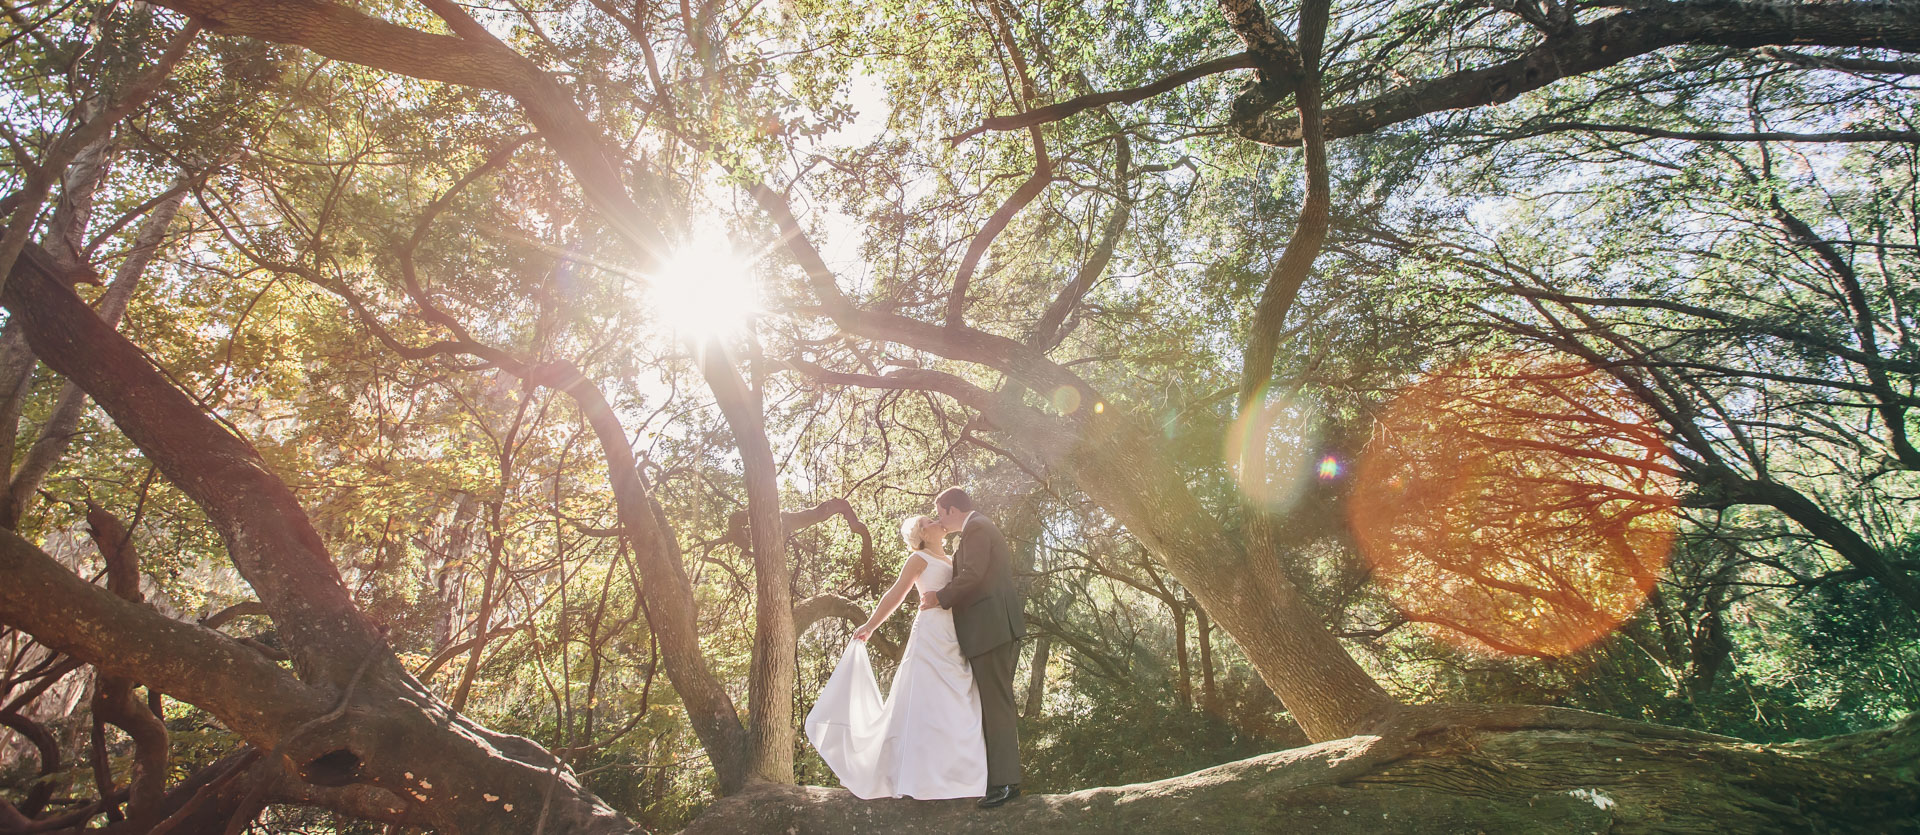 bride-and-groom-in-a-tree